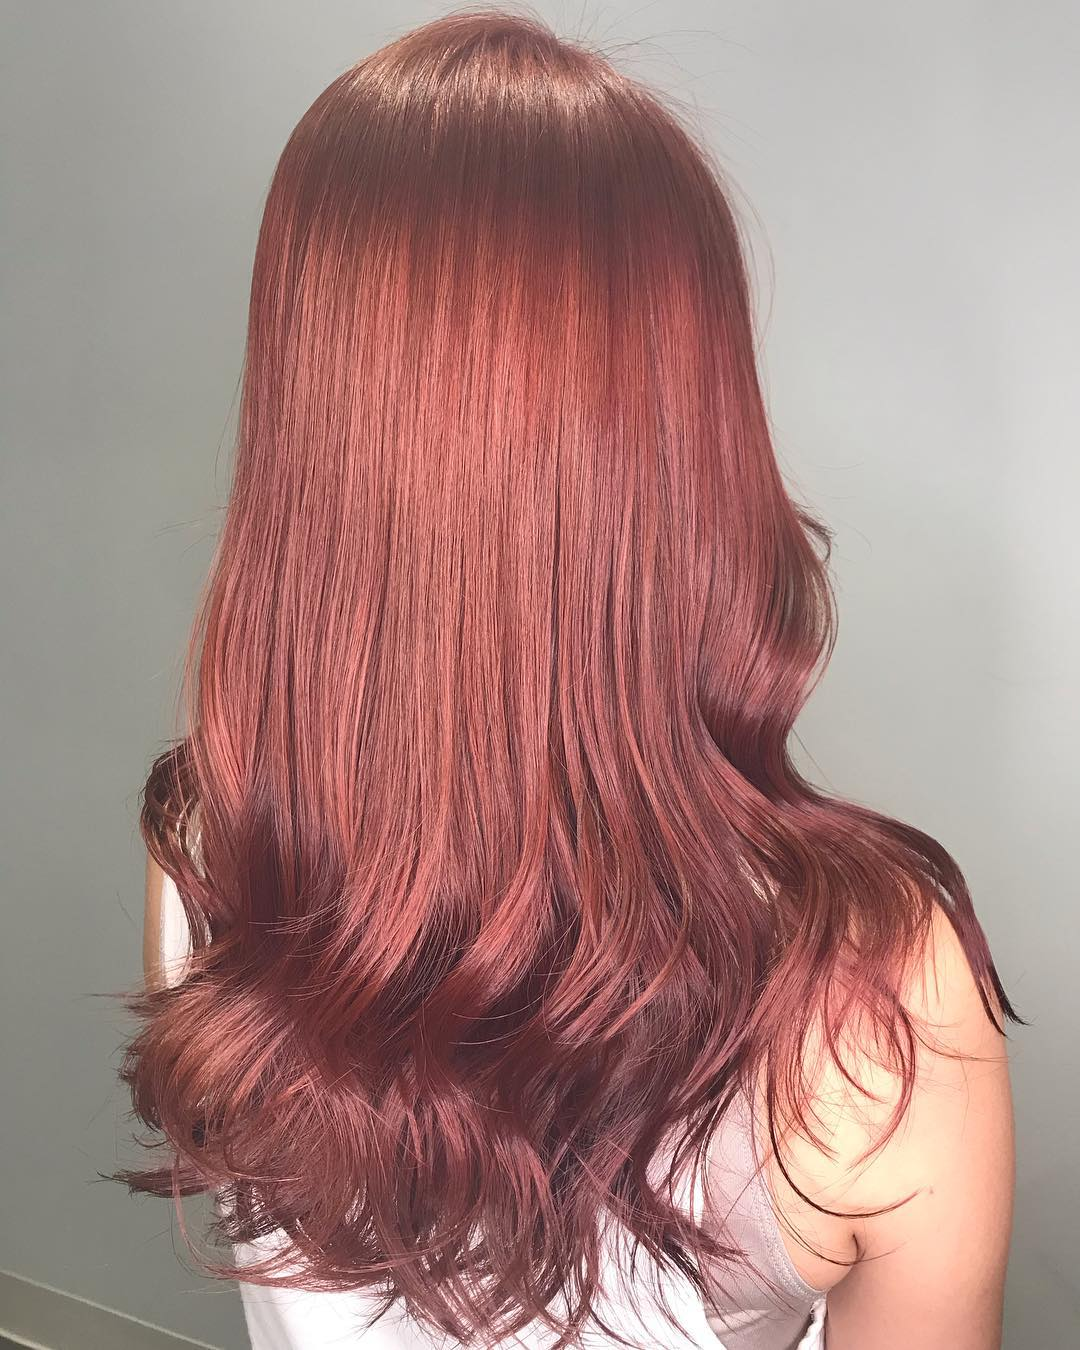 Red Hair Colour by Japanese Stylist Ken from Threes Japanese Hair Salon